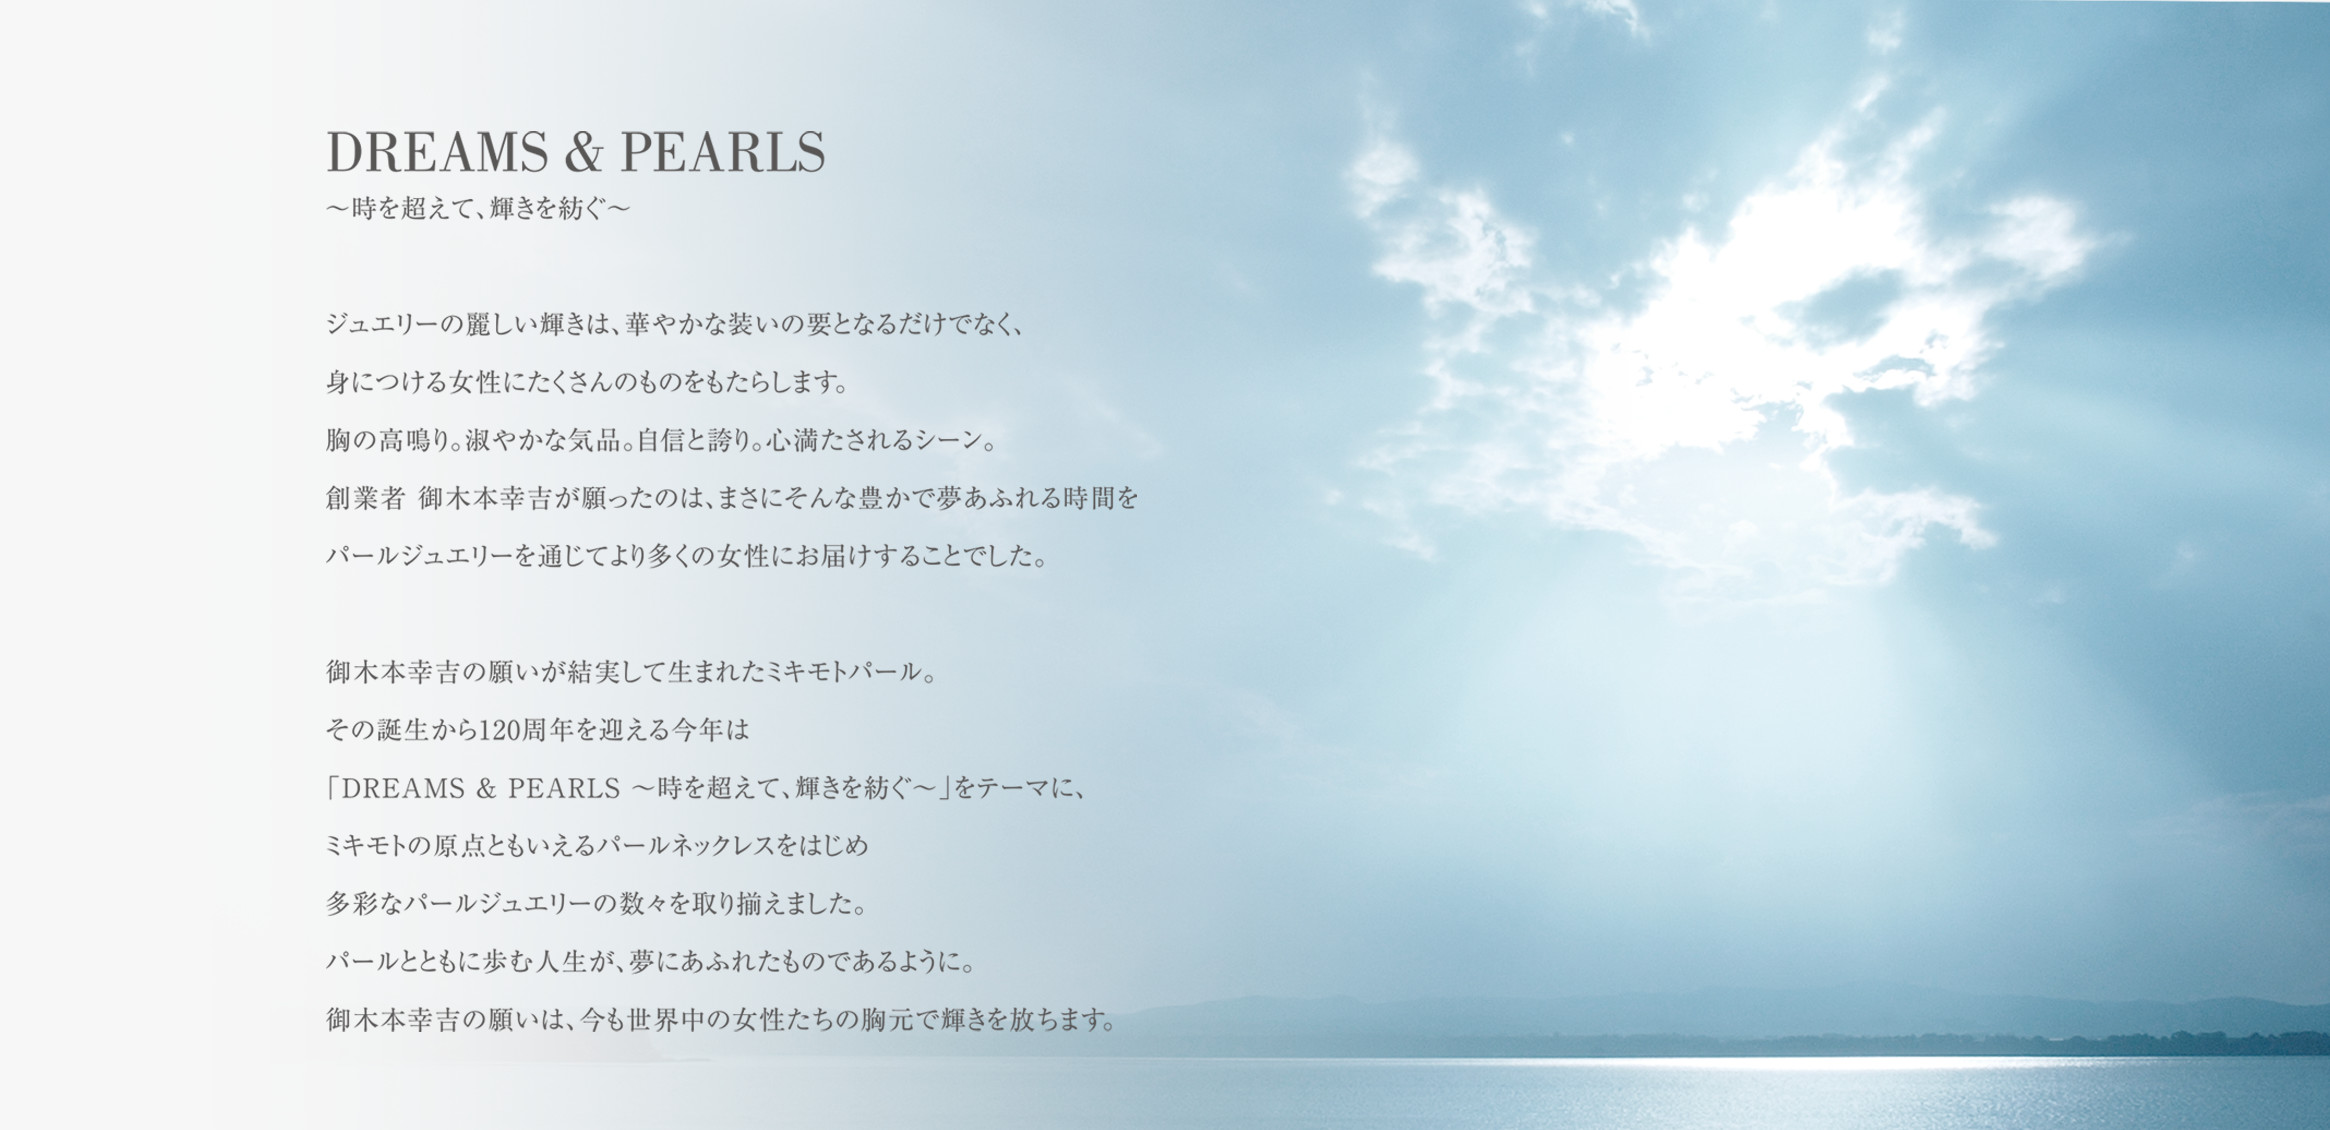 Catalog commemorating the 120th anniversary of the invention of Mikimoto pearls3枚目